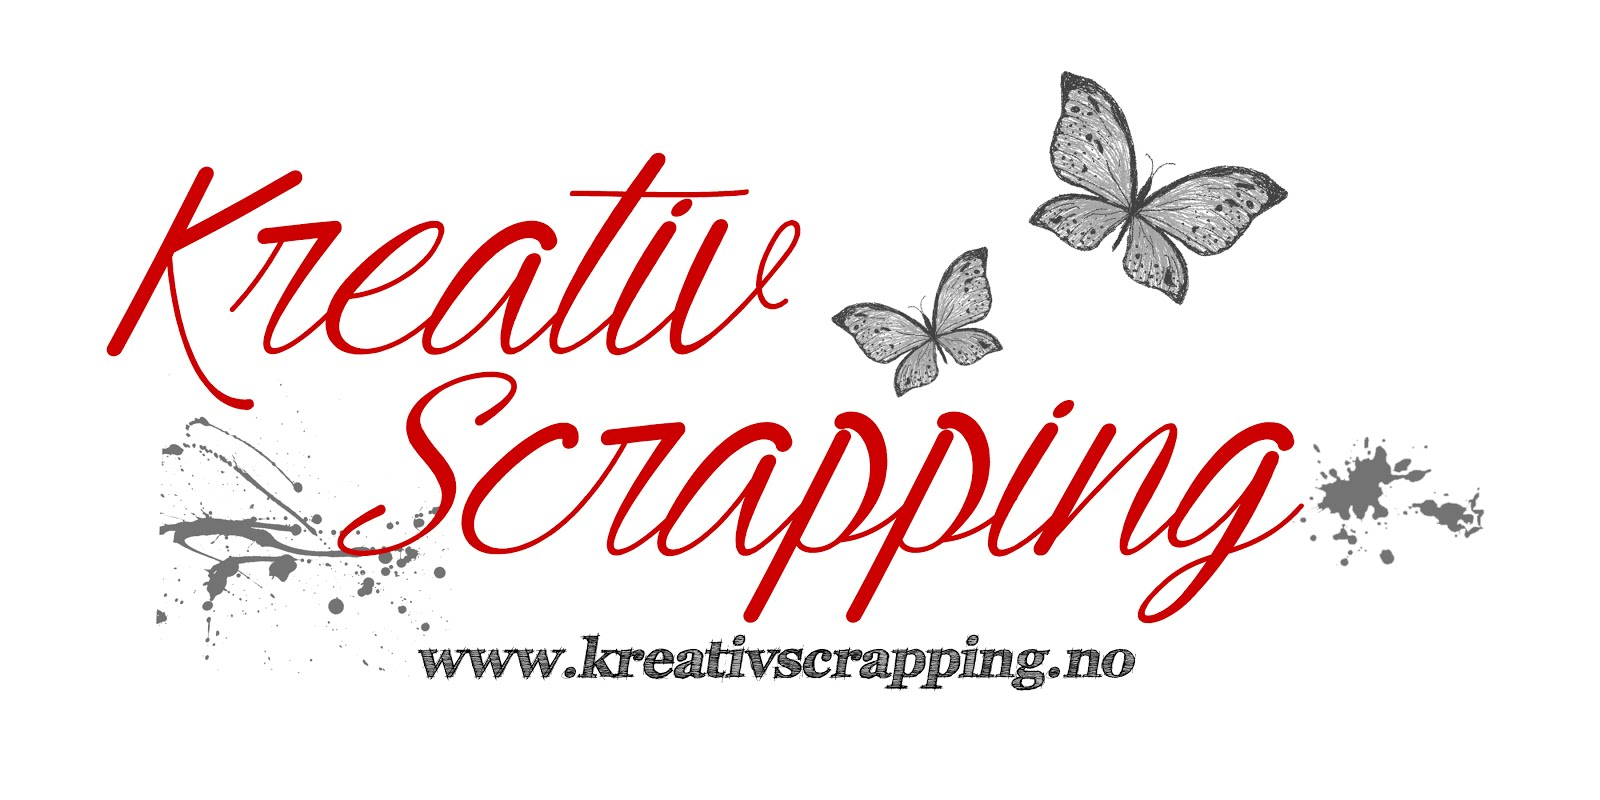 DT Kreativ Scrapping